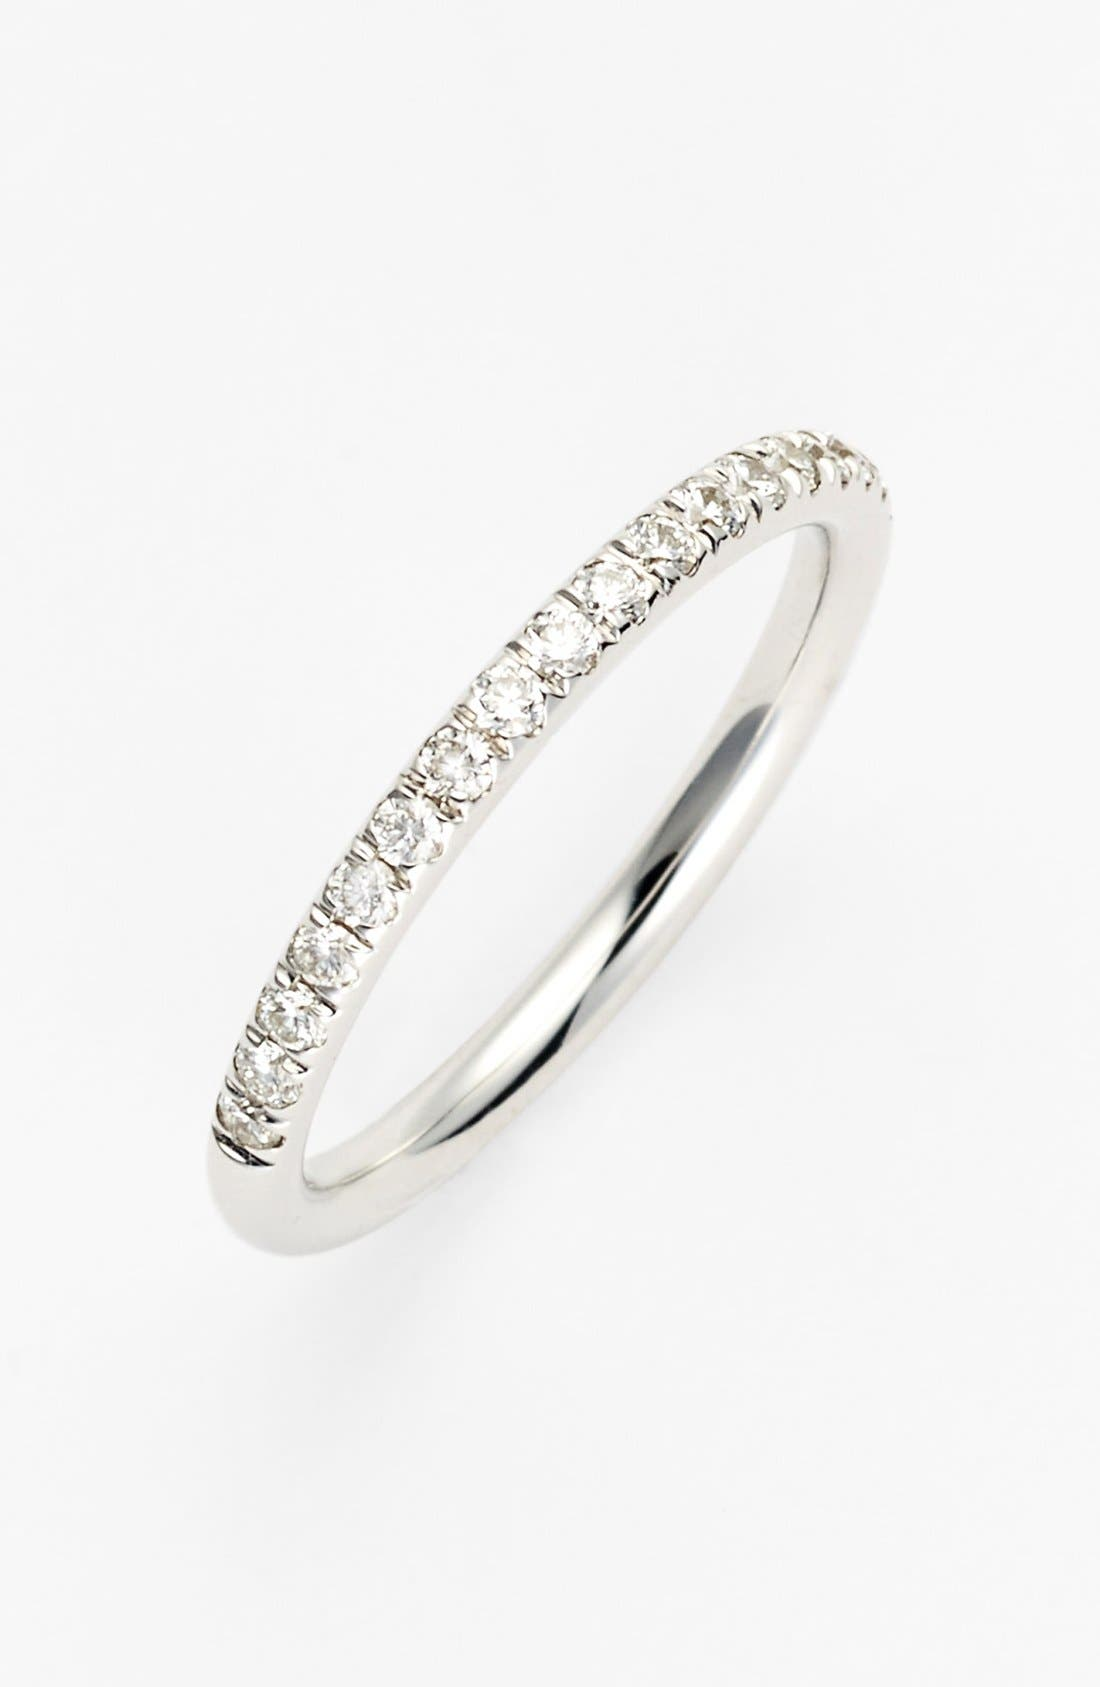 Round-cut and pave-set diamonds glitter on the top half of a gleaming keepsake-worthy ring band rendered in solid gold. Style Name: Bony Levy Stackable Large Straight Diamond Band Ring (Nordstrom Exclusive). Style Number: 945008. Available in stores.